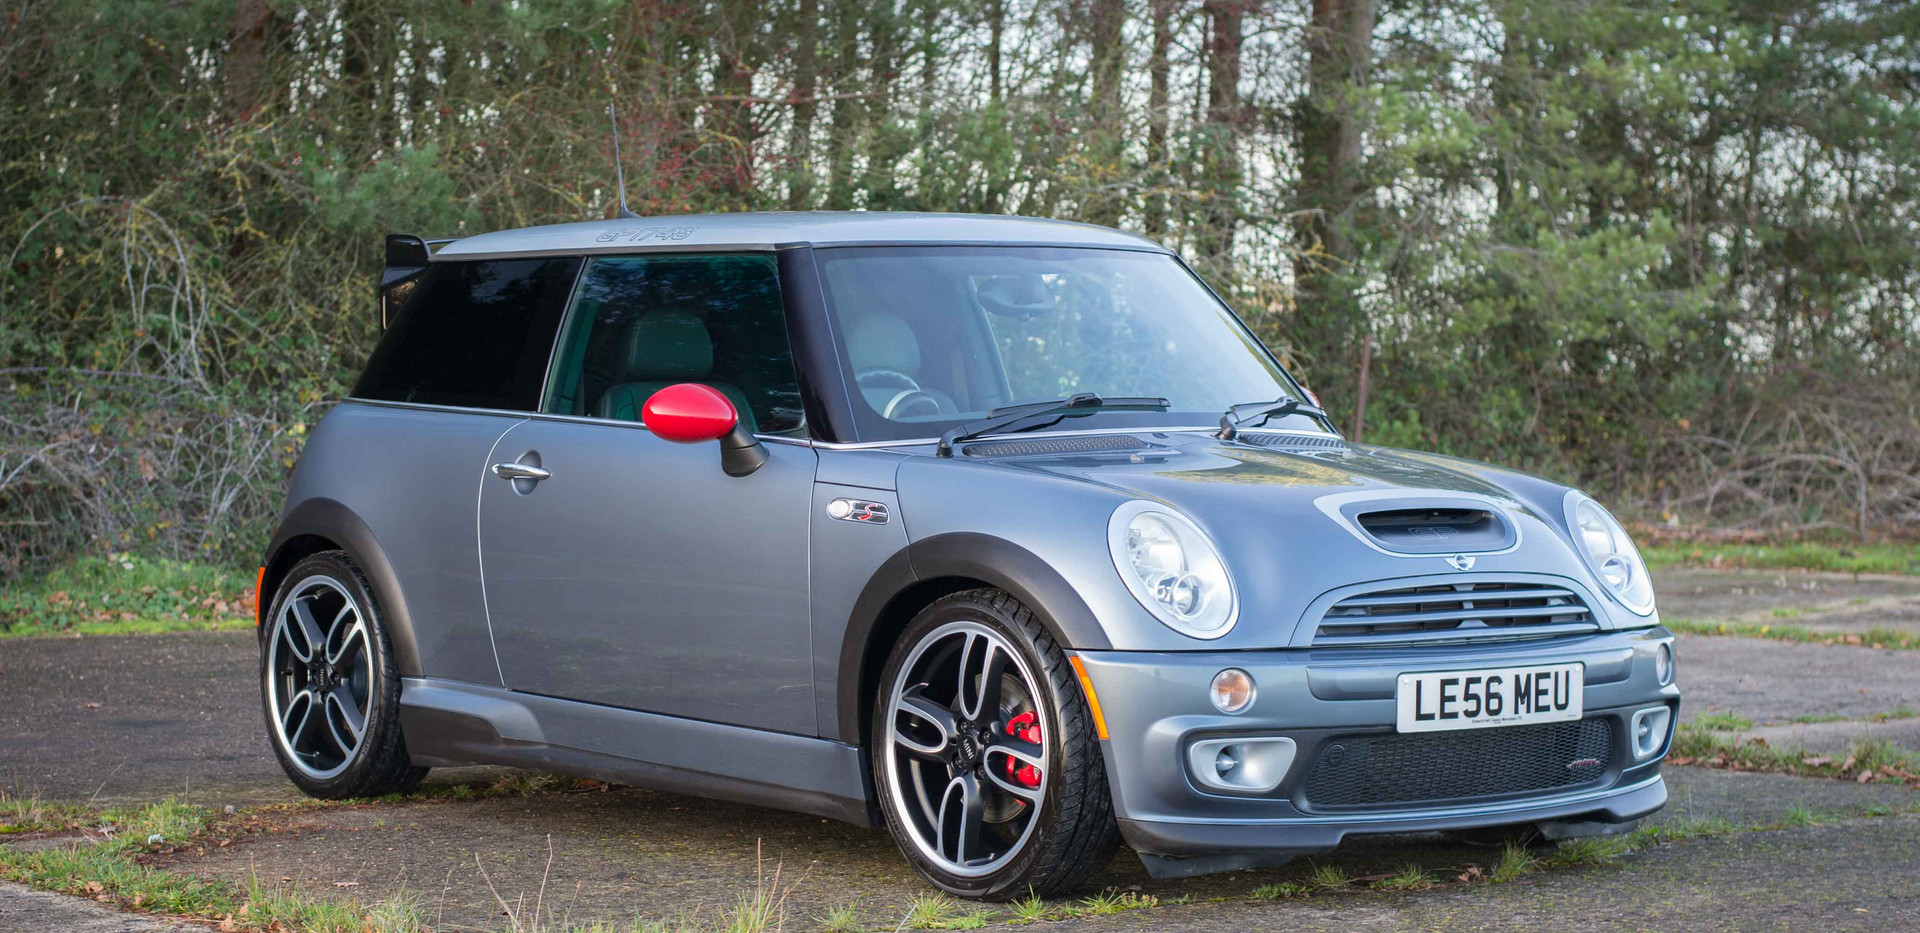 MINI JCW GP For Sale UK London  (2 of 43